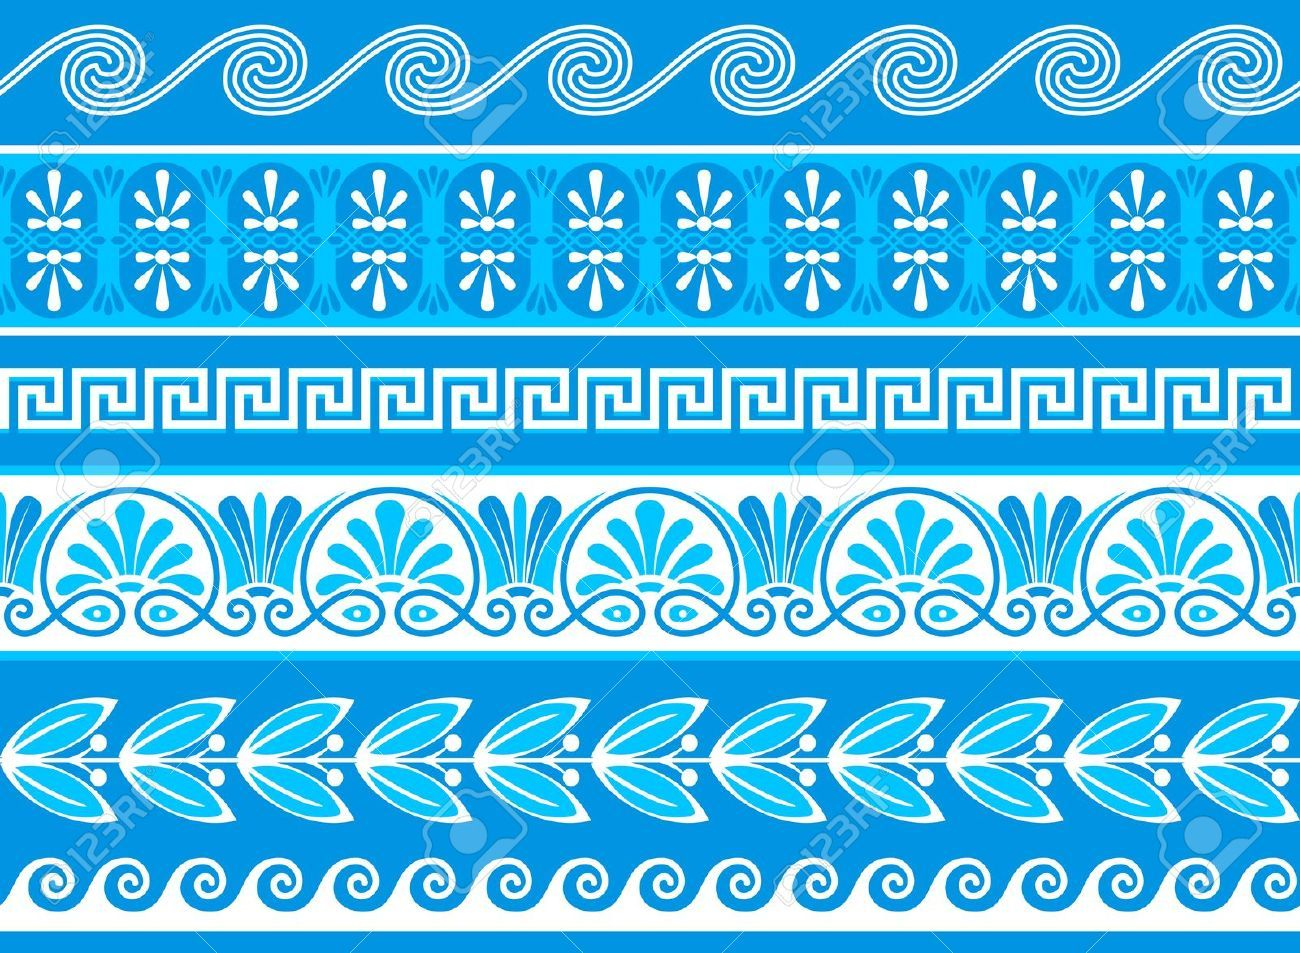 Griechische Muster 13748375 Decorative Greek Borders Done As Samples Stock